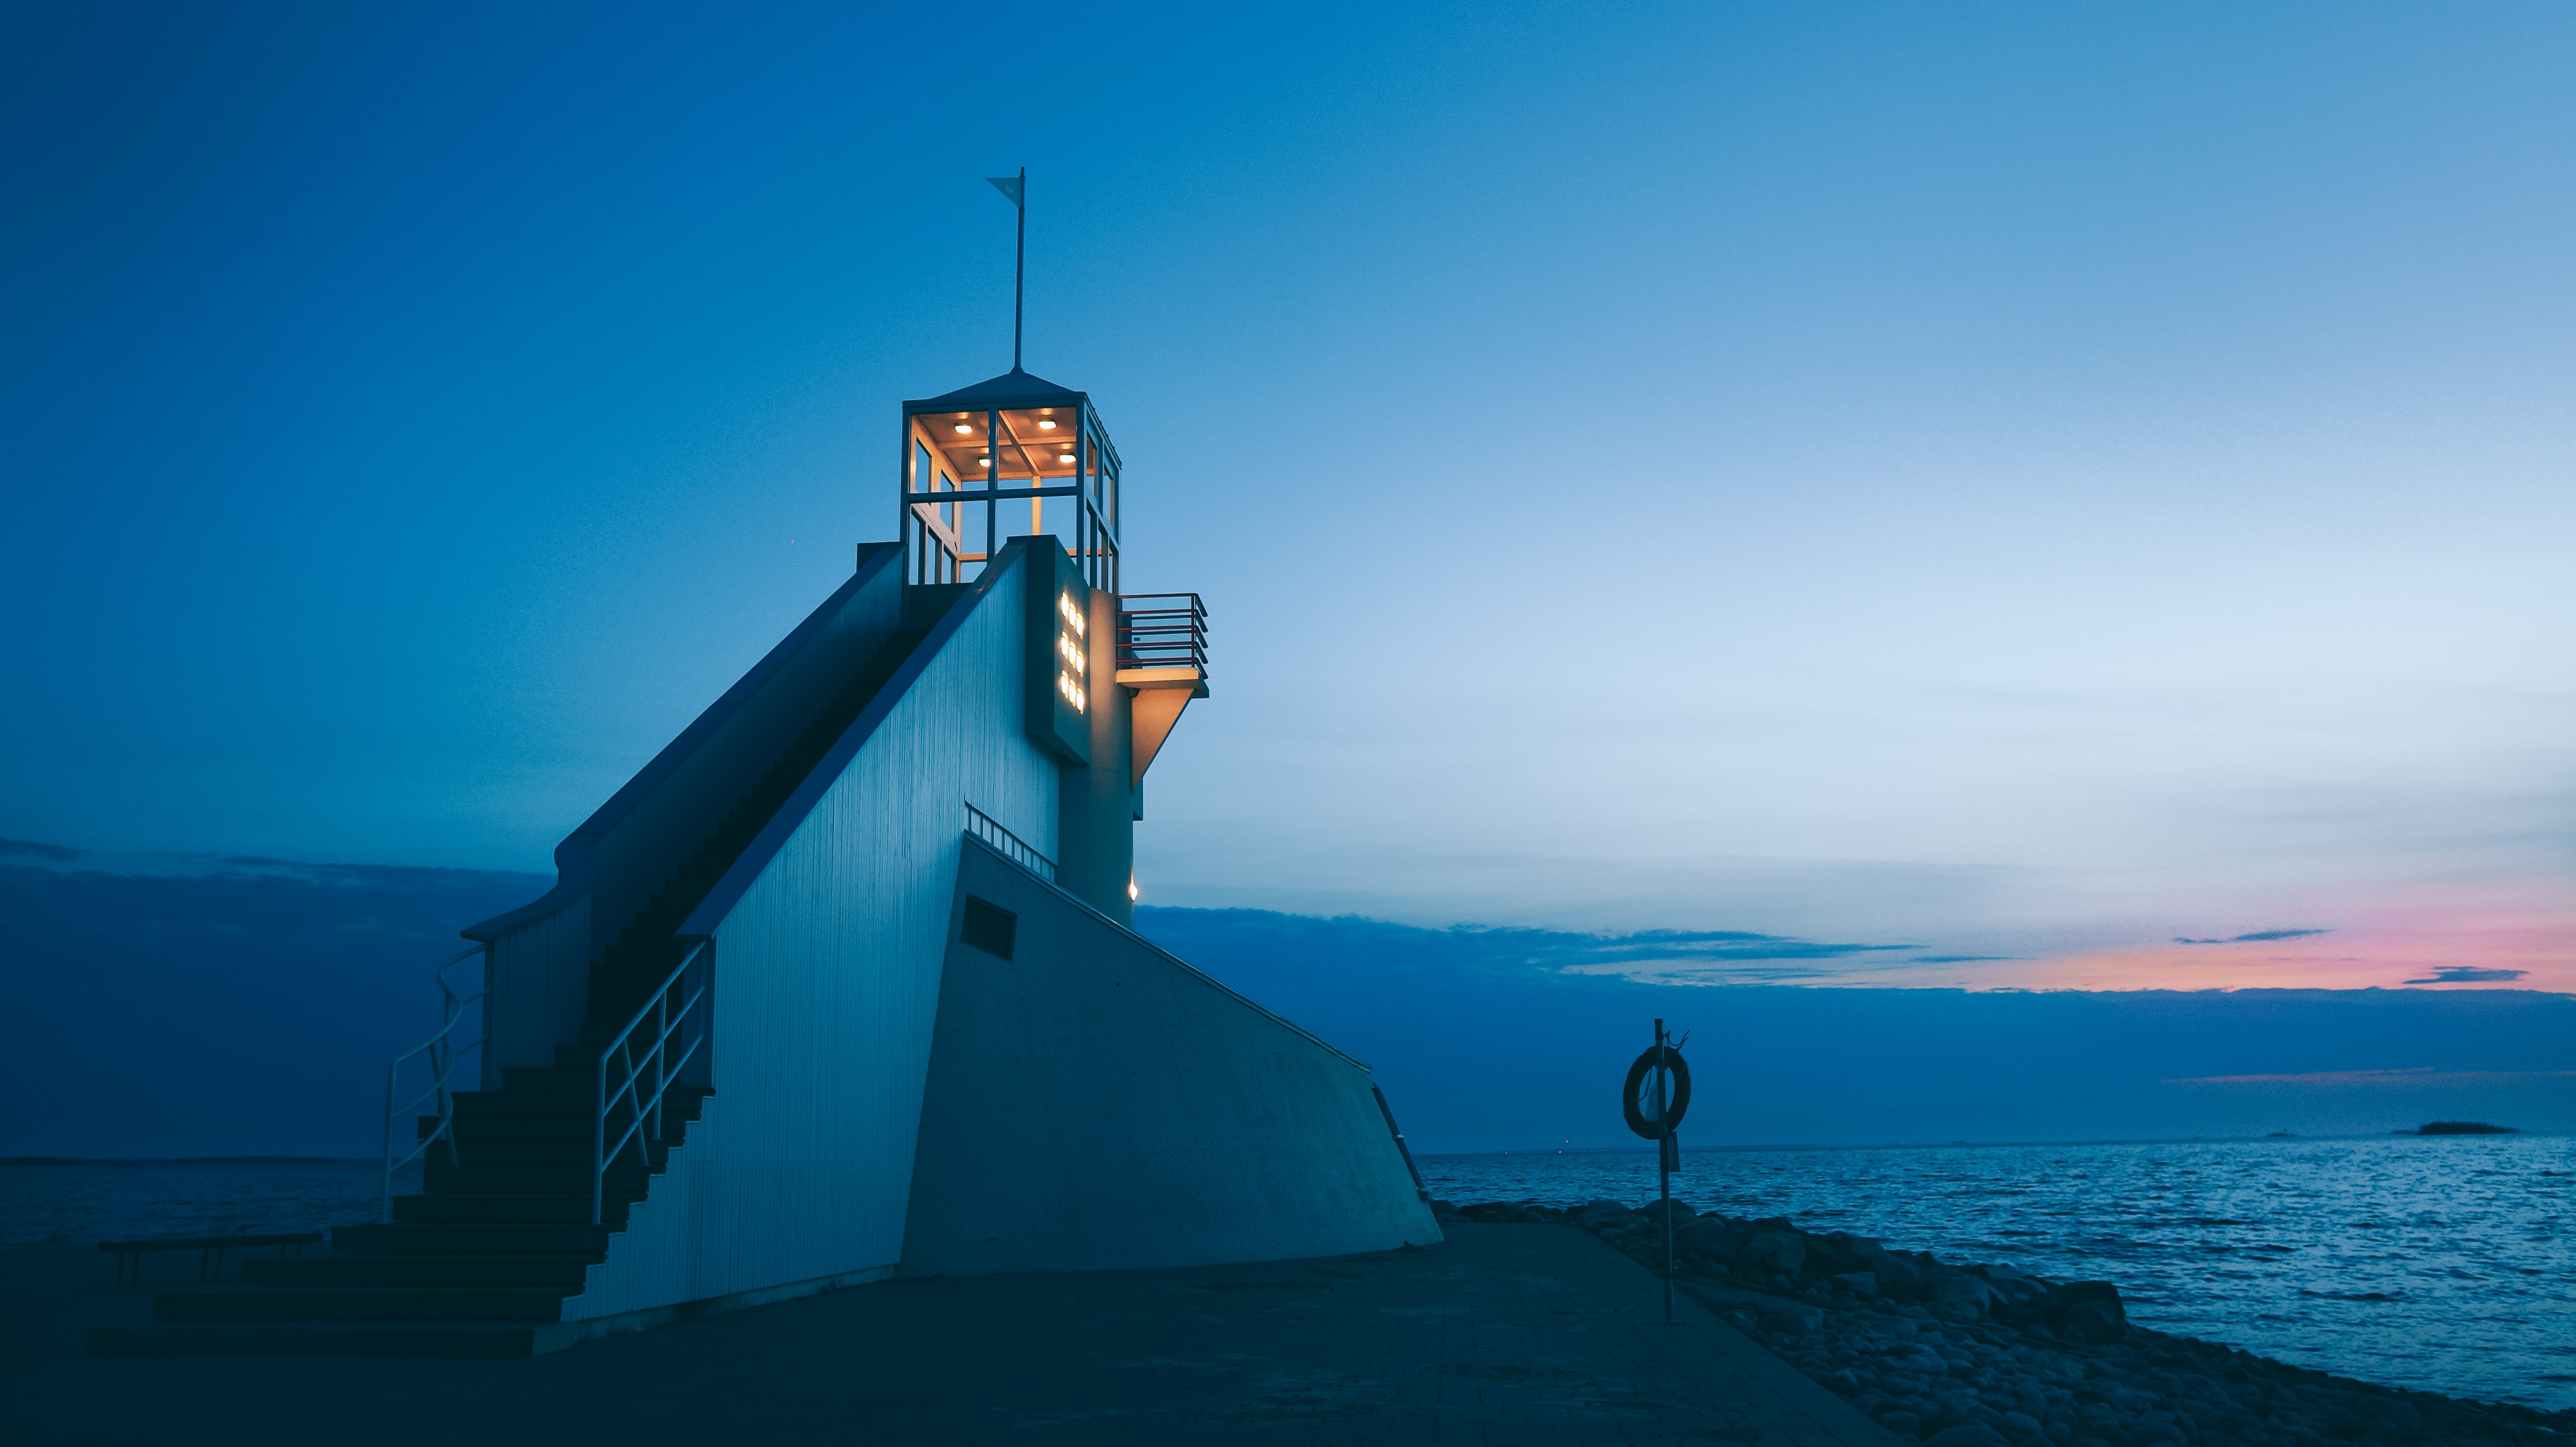 A lighthouse beacon with illuminated lights in front of a blue sky and sea at sunset, Oulu